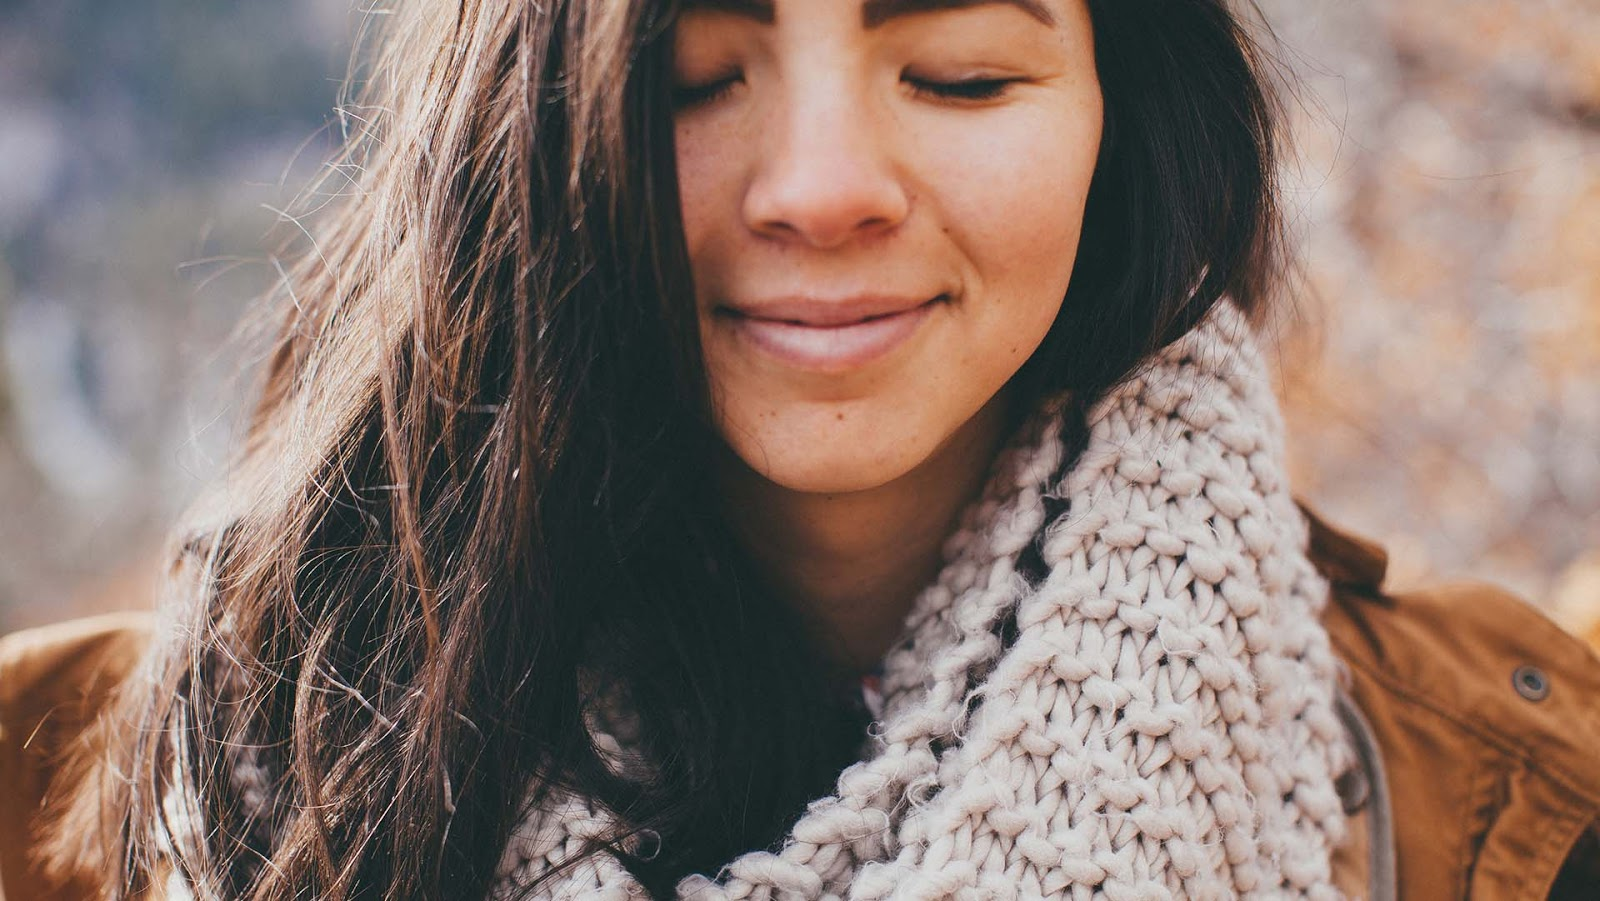 The Winter Cleansing Routine You Should Switch To